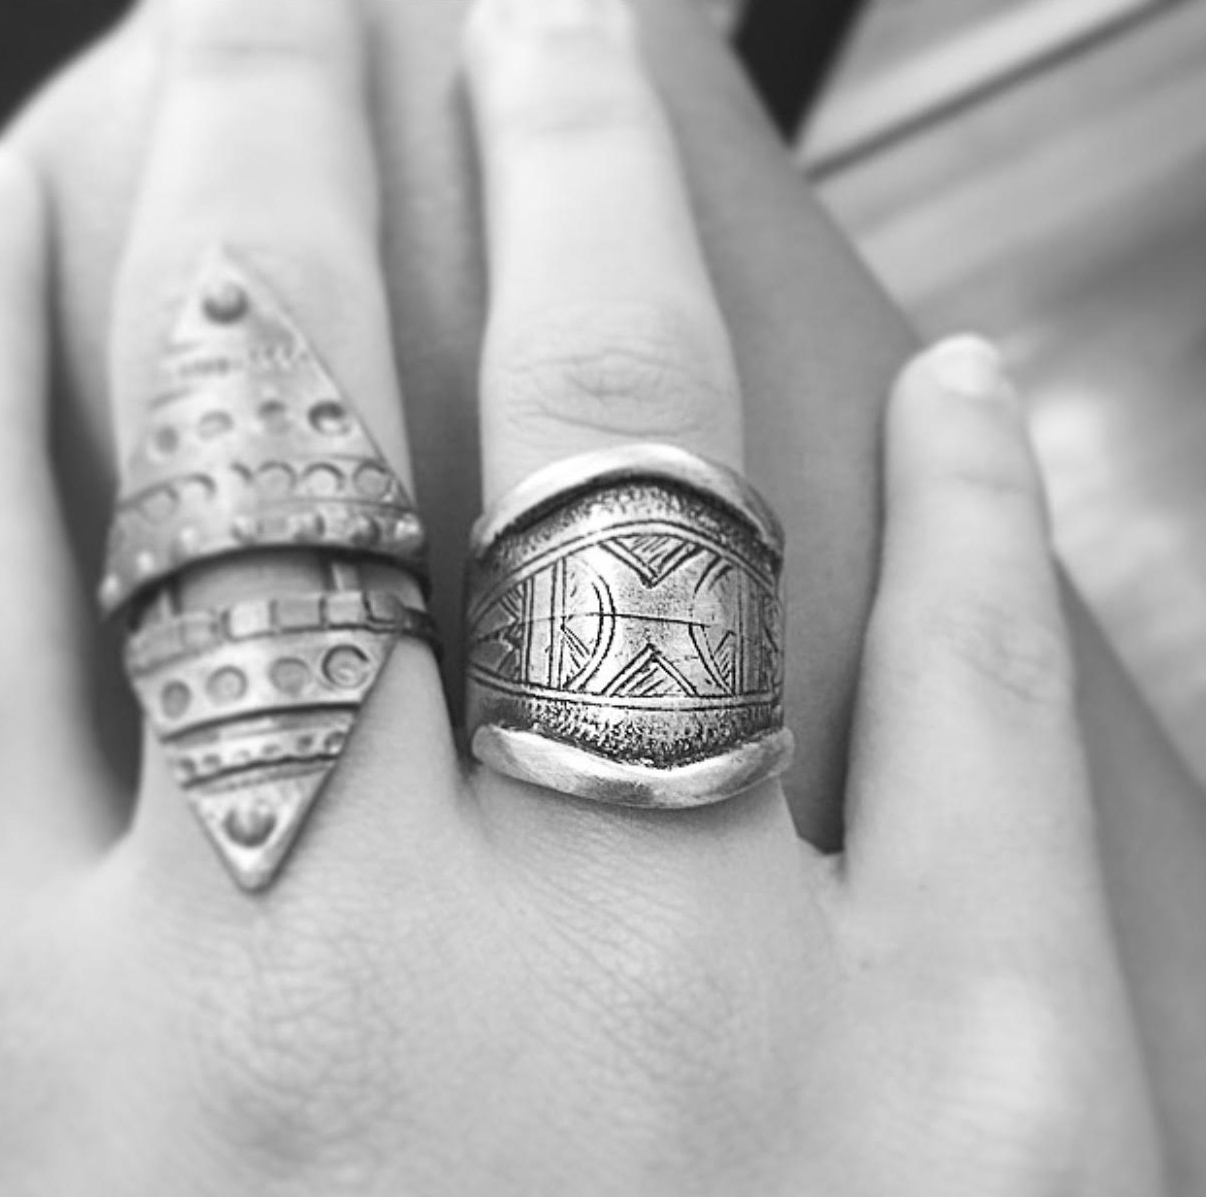 In love with one of our customers, who added our etched Taureg ring in ox silver to her collection.